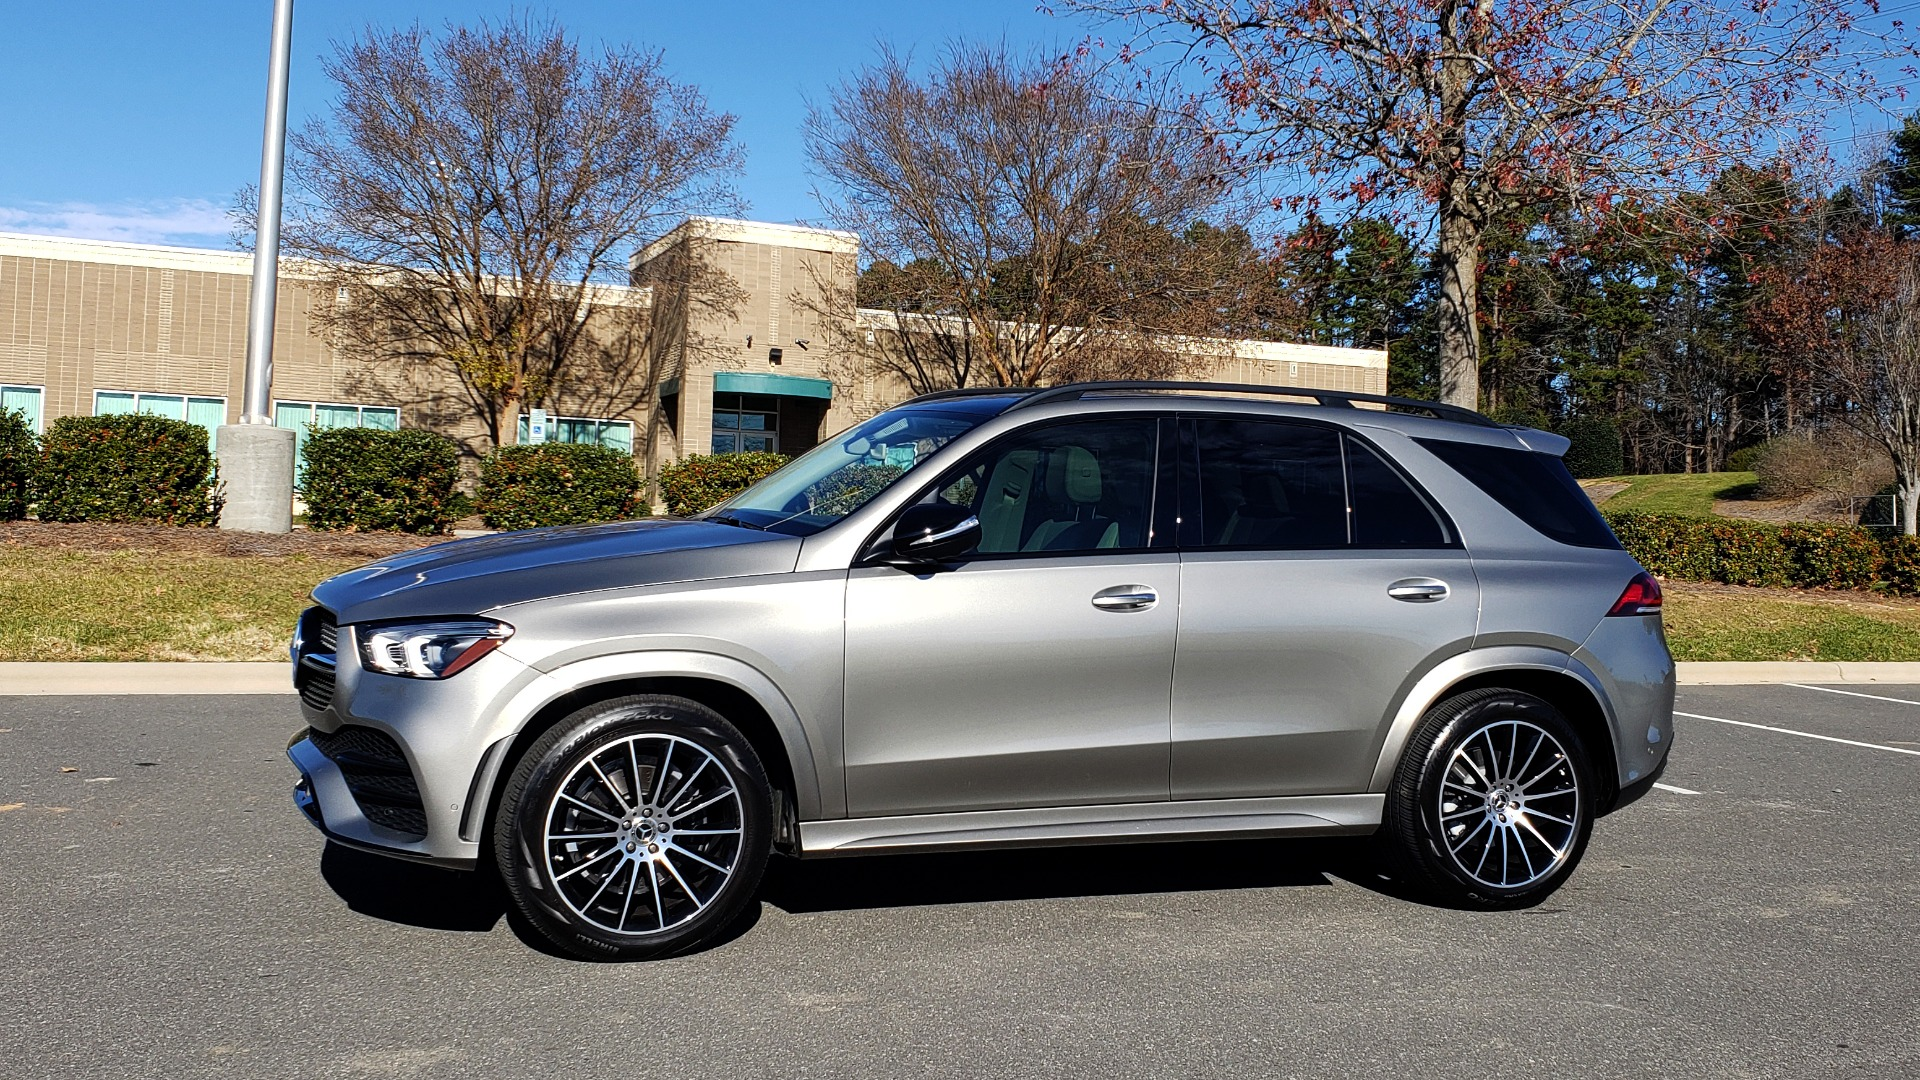 Used 2020 Mercedes-Benz GLE 350 PREMIUM / NAV / PARK ASST / NIGHT PKG / AMG LINE EXT / REARVIEW for sale Sold at Formula Imports in Charlotte NC 28227 3